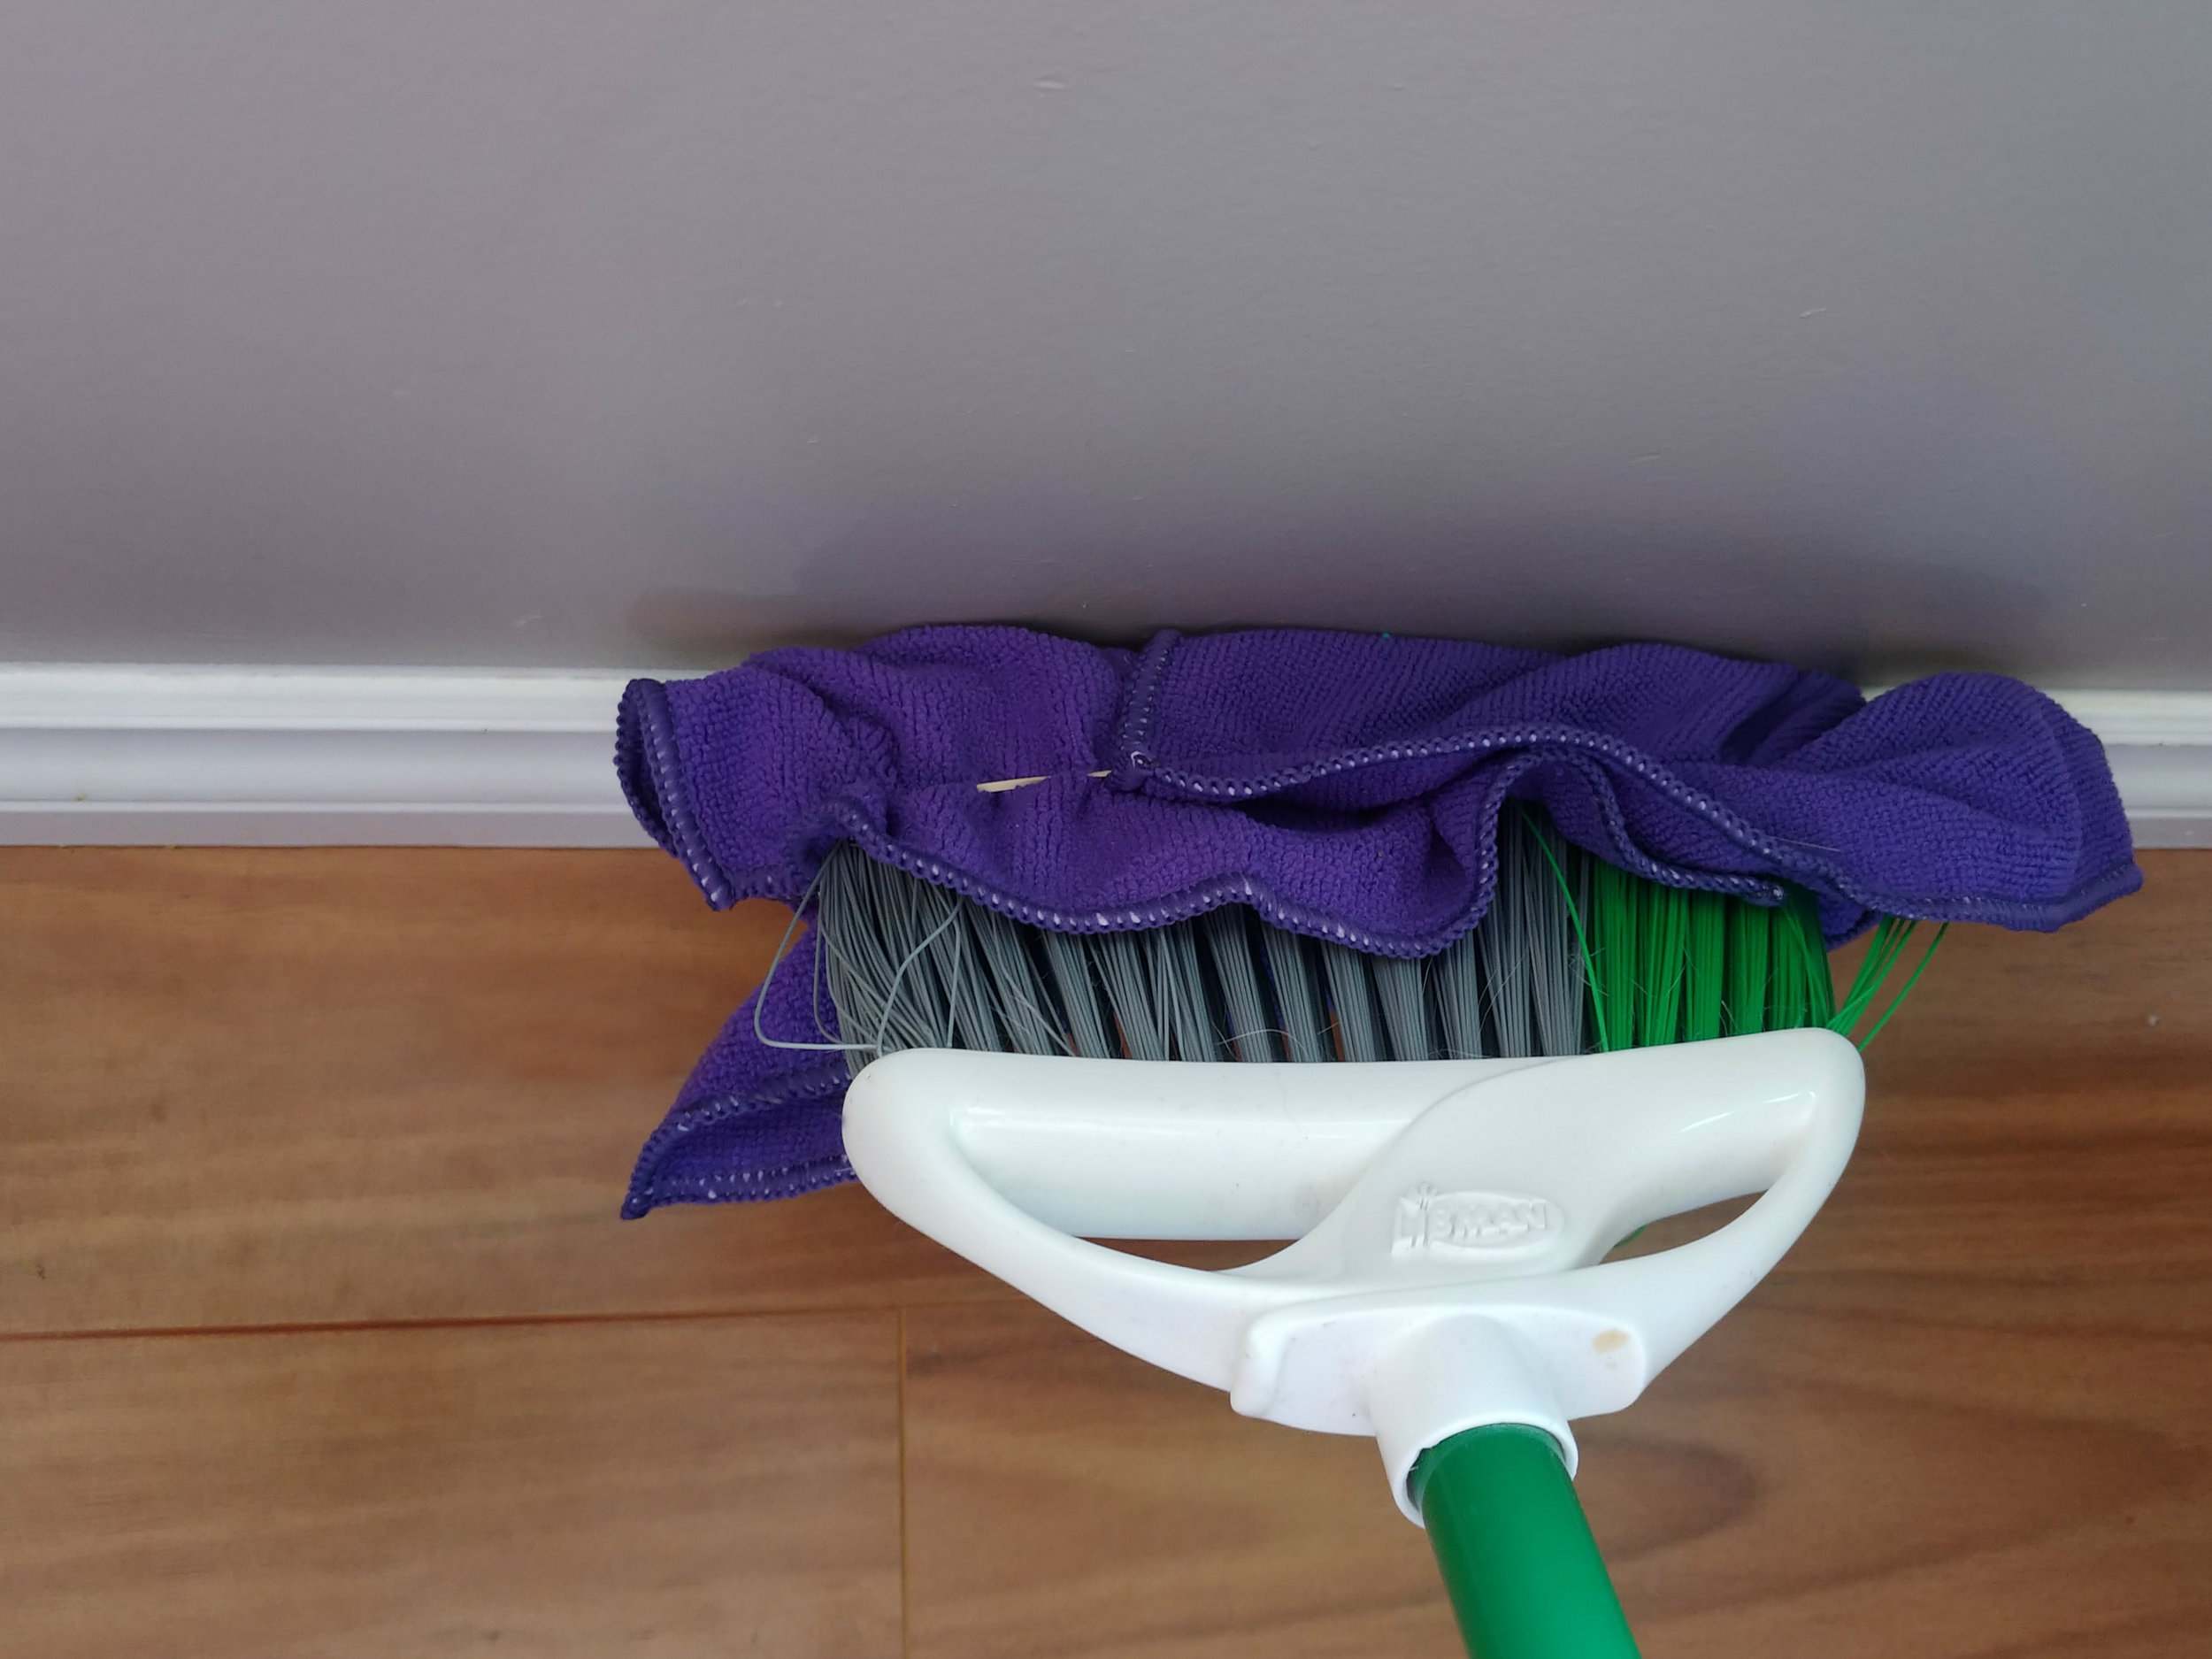 Baseboard Cleaning Hack!